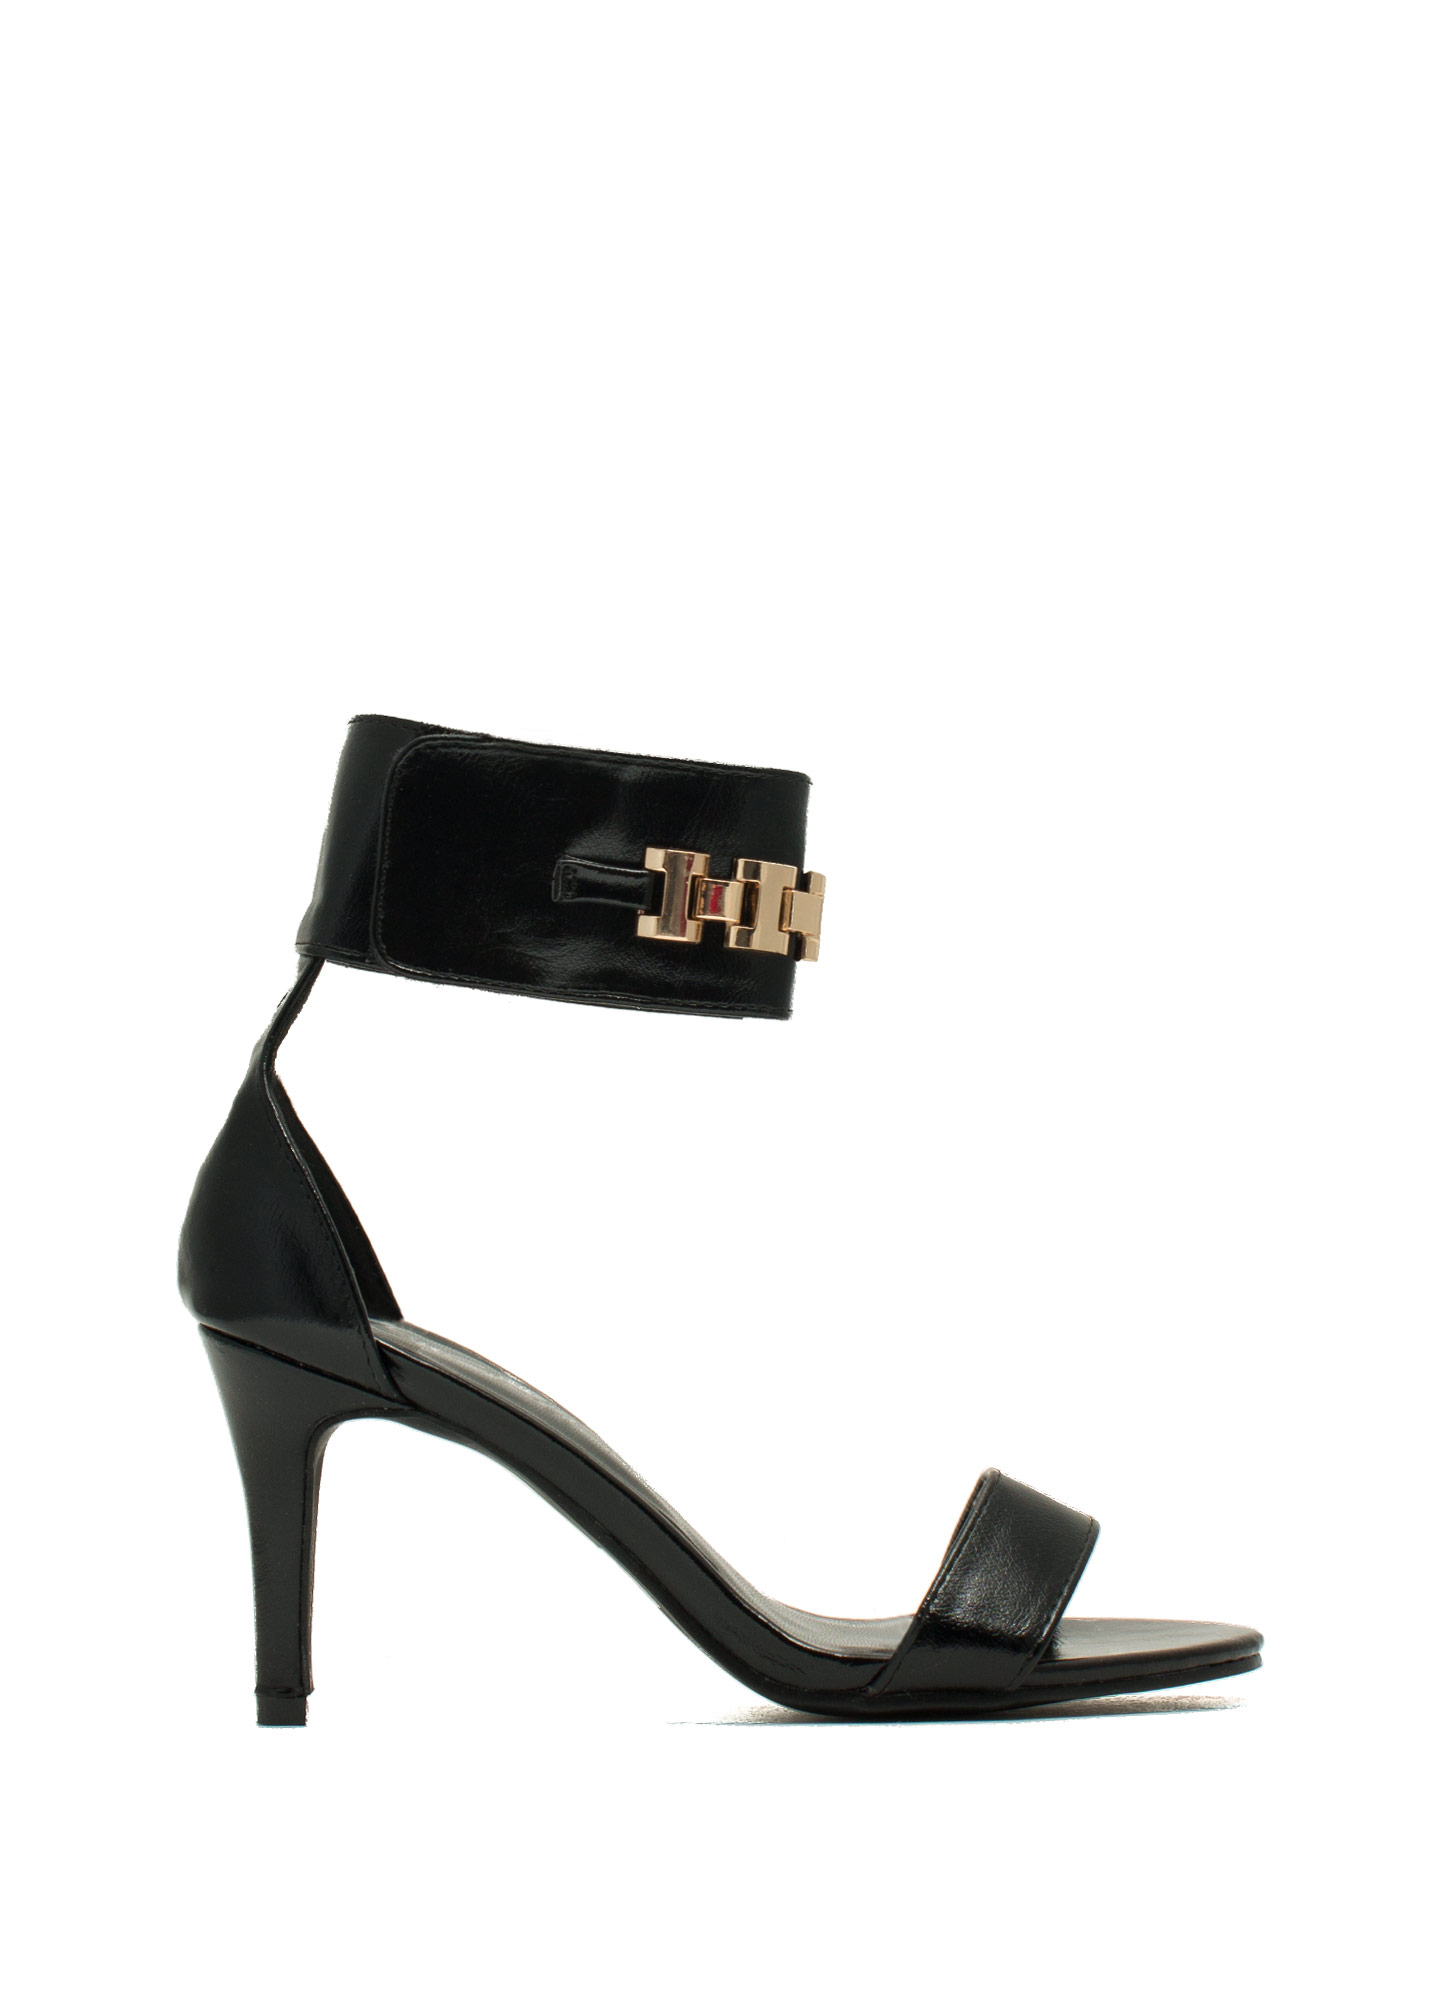 Show Your ID Chain Heels BLACK